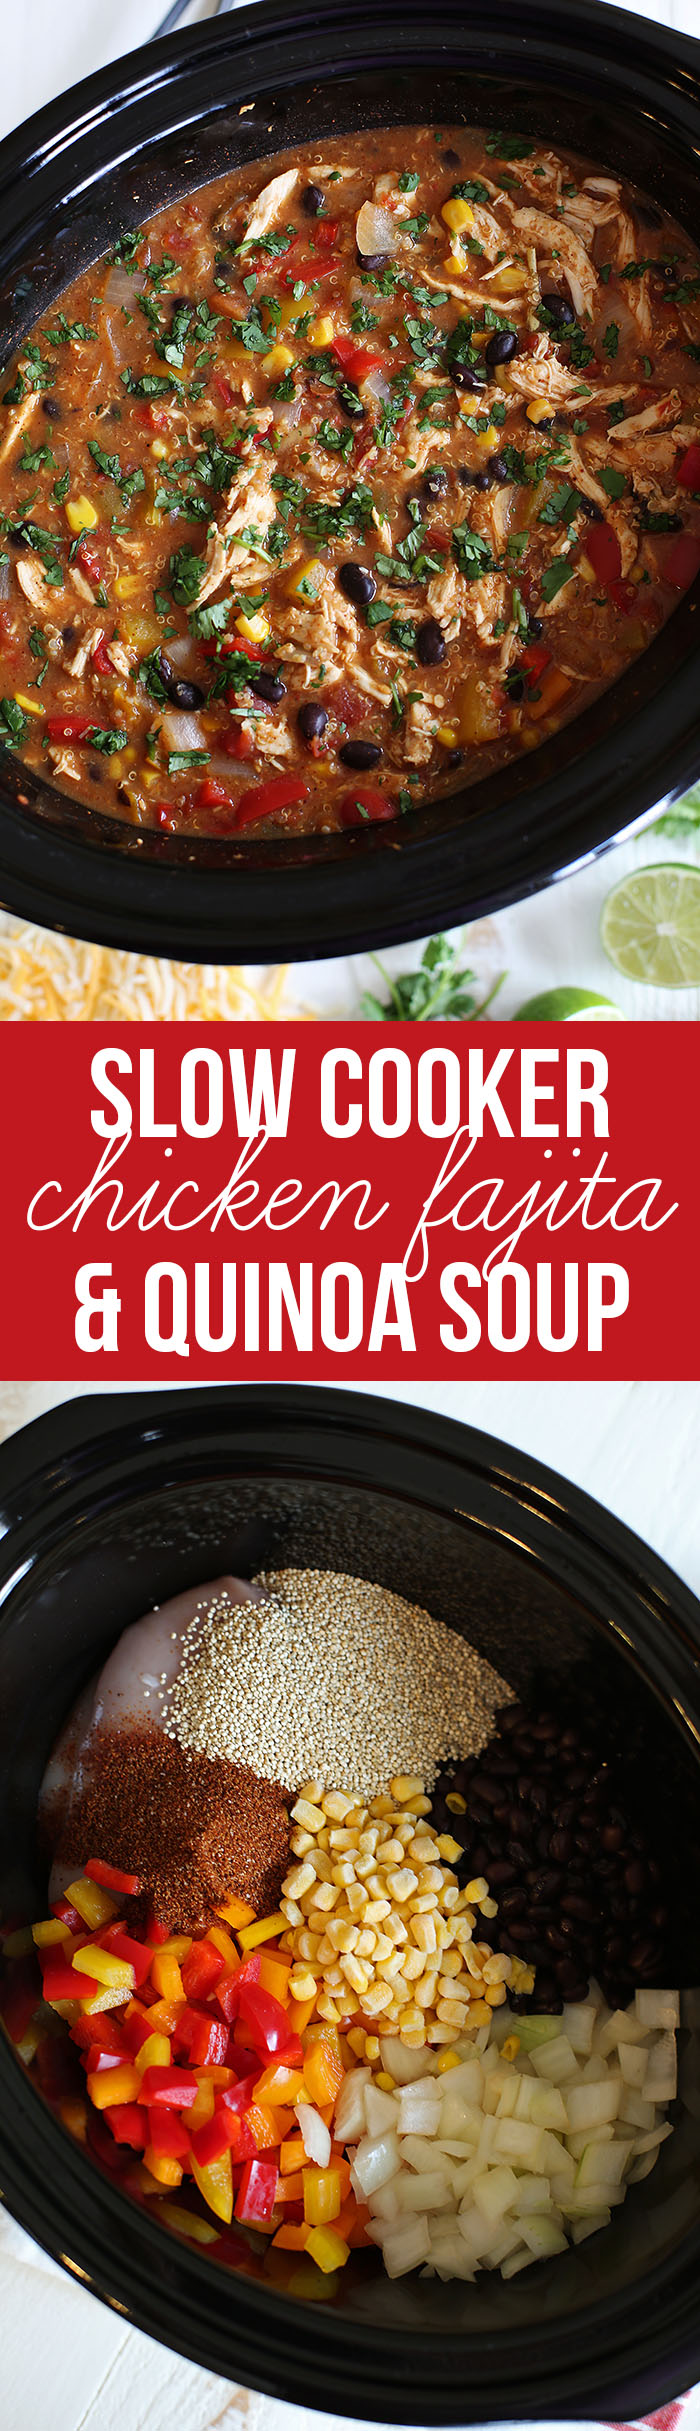 My FAVORITE Slow Cooker Chicken Fajita & Quinoa Soup that is healthy, easy to make and freezer friendly!